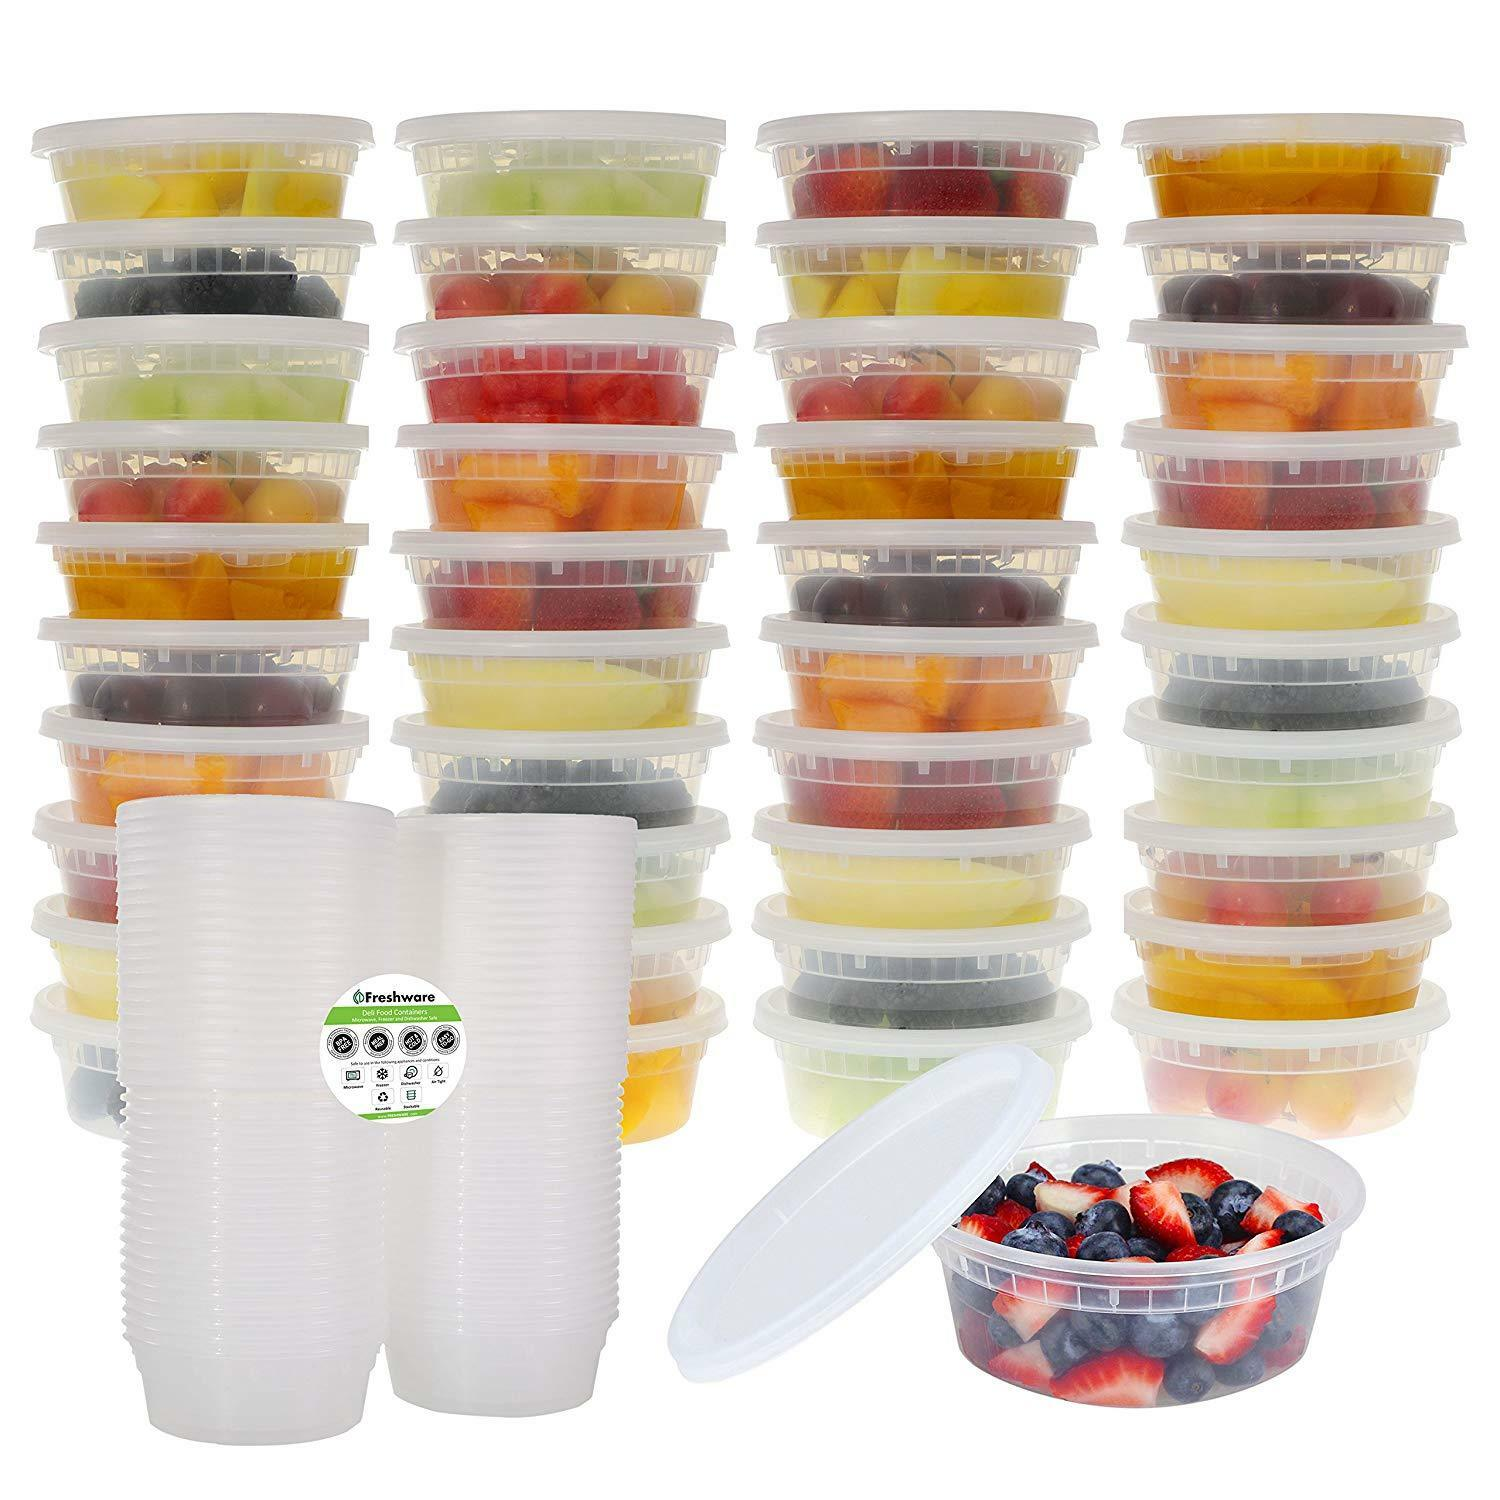 Freshware 40-Pack 8 oz Plastic Food Storage Containers with